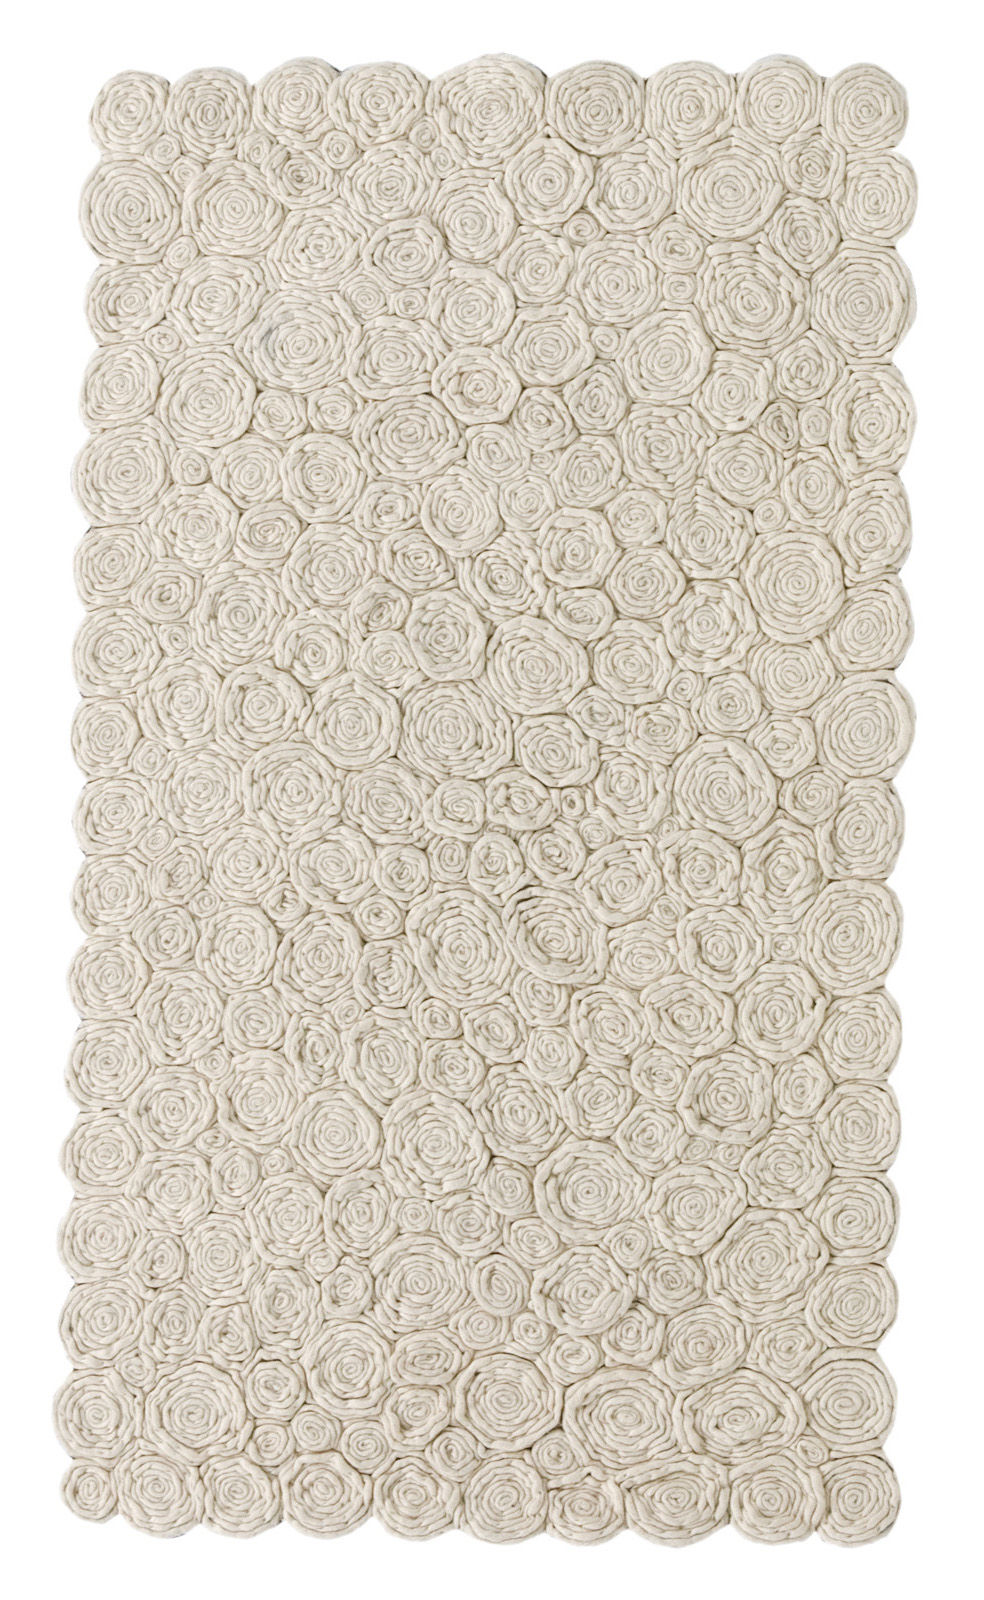 Furniture - Carpets - Spiral Rug - 80 x 140 cm by Nanimarquina - Ivory / 80 x 140 cm - Wool